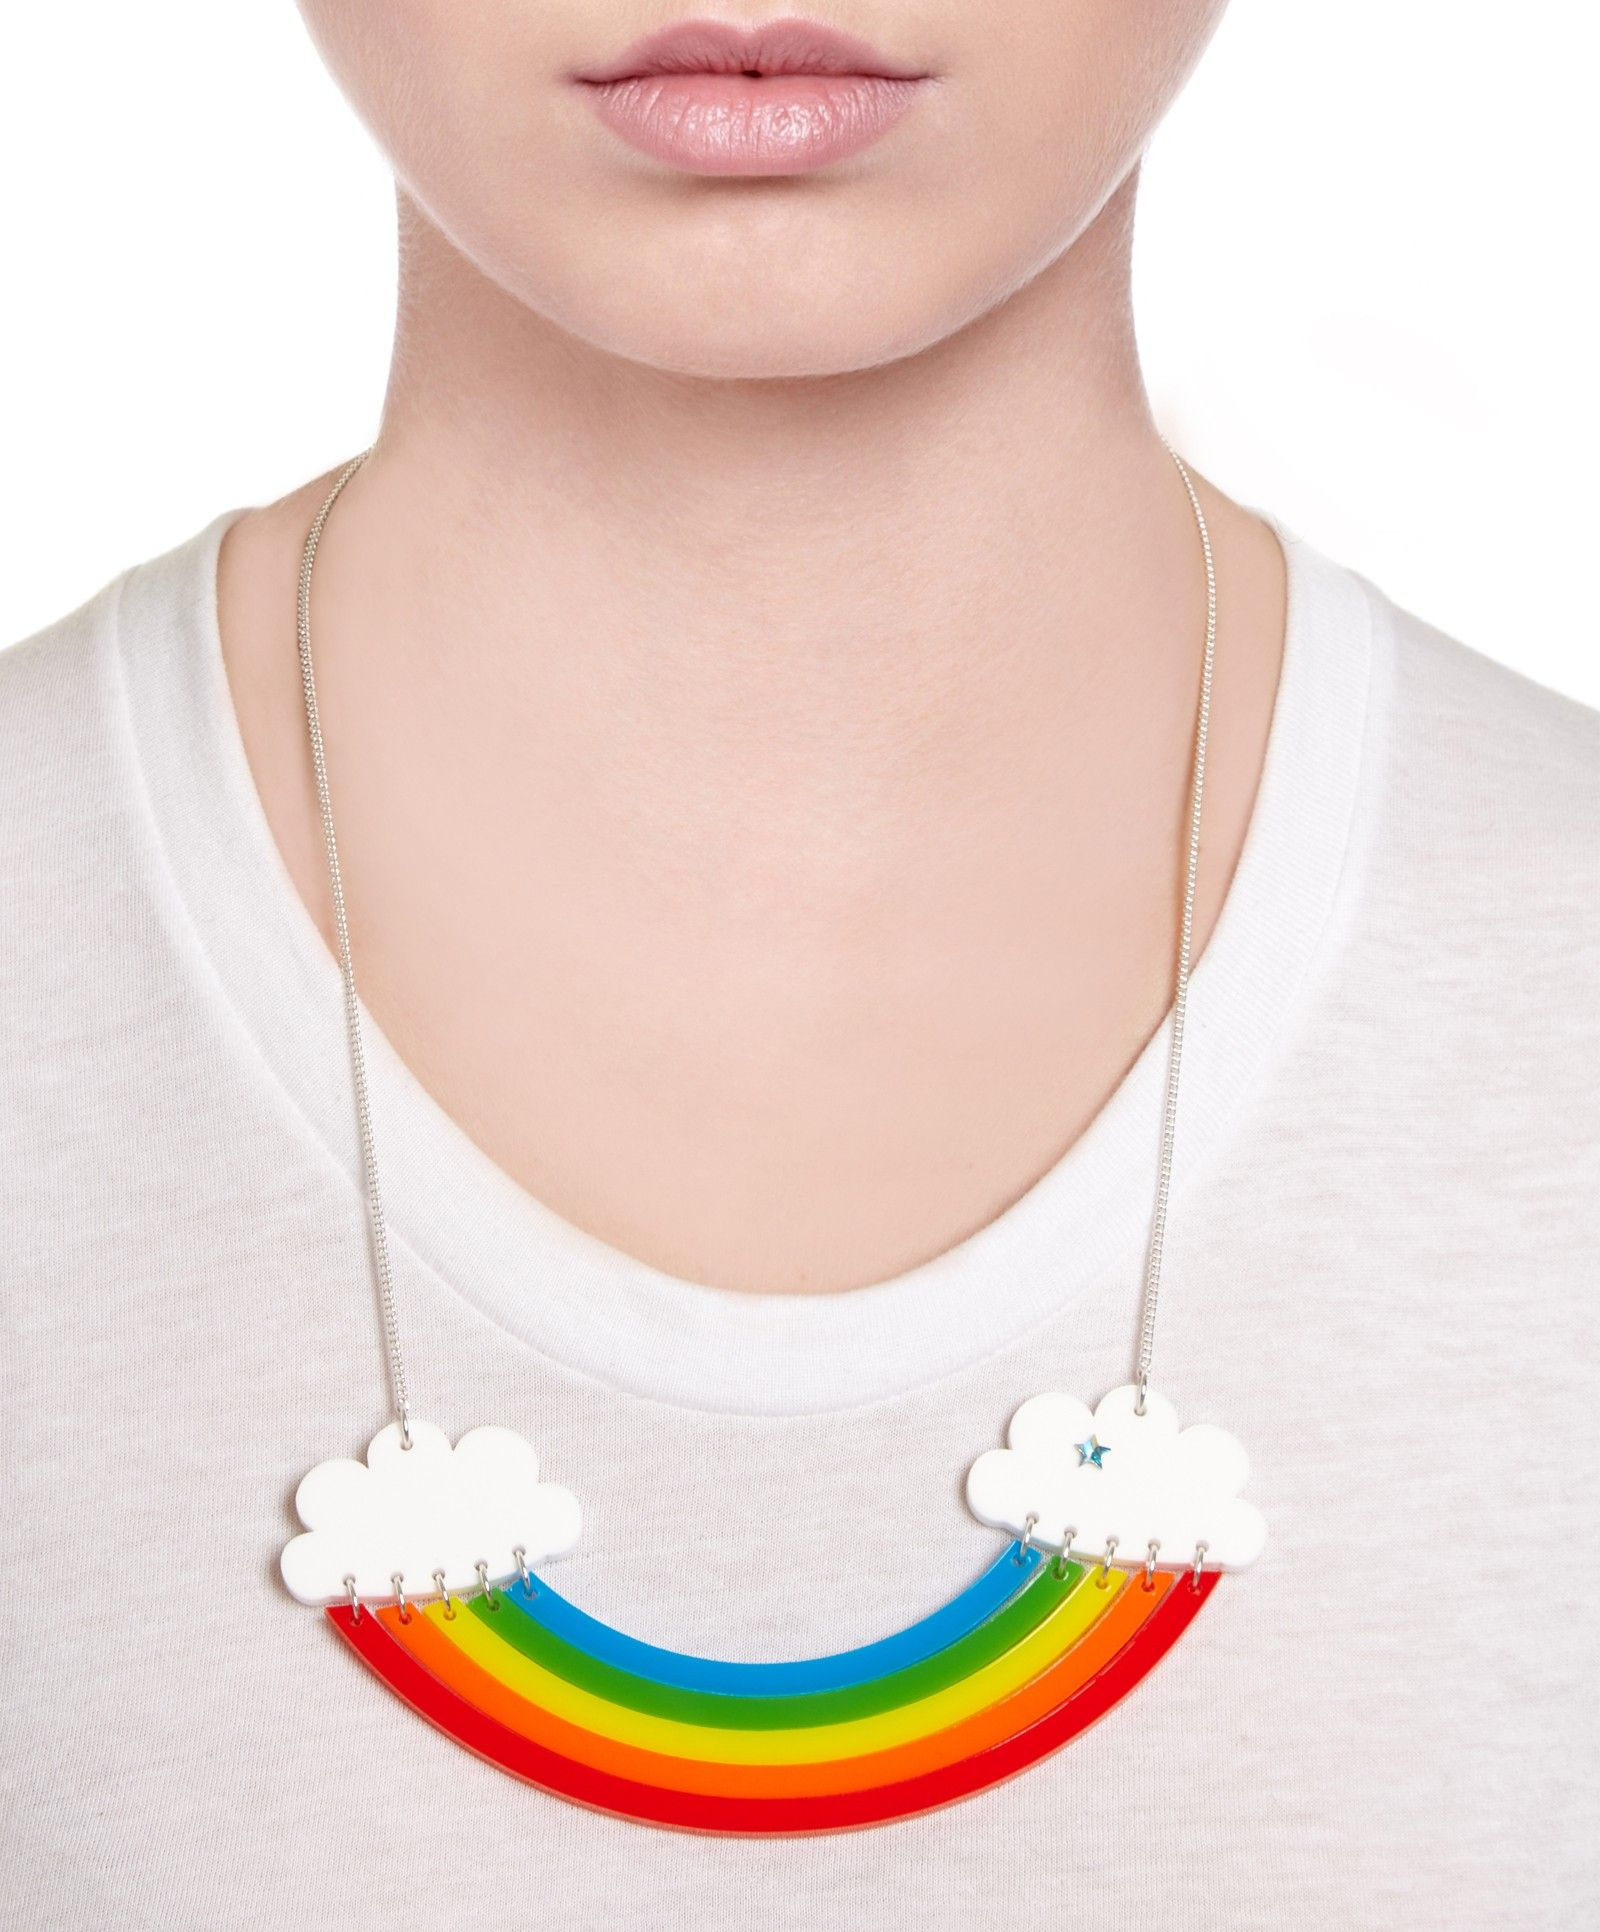 store rainbow mn item it ck necklace charm creative tap kidstuff